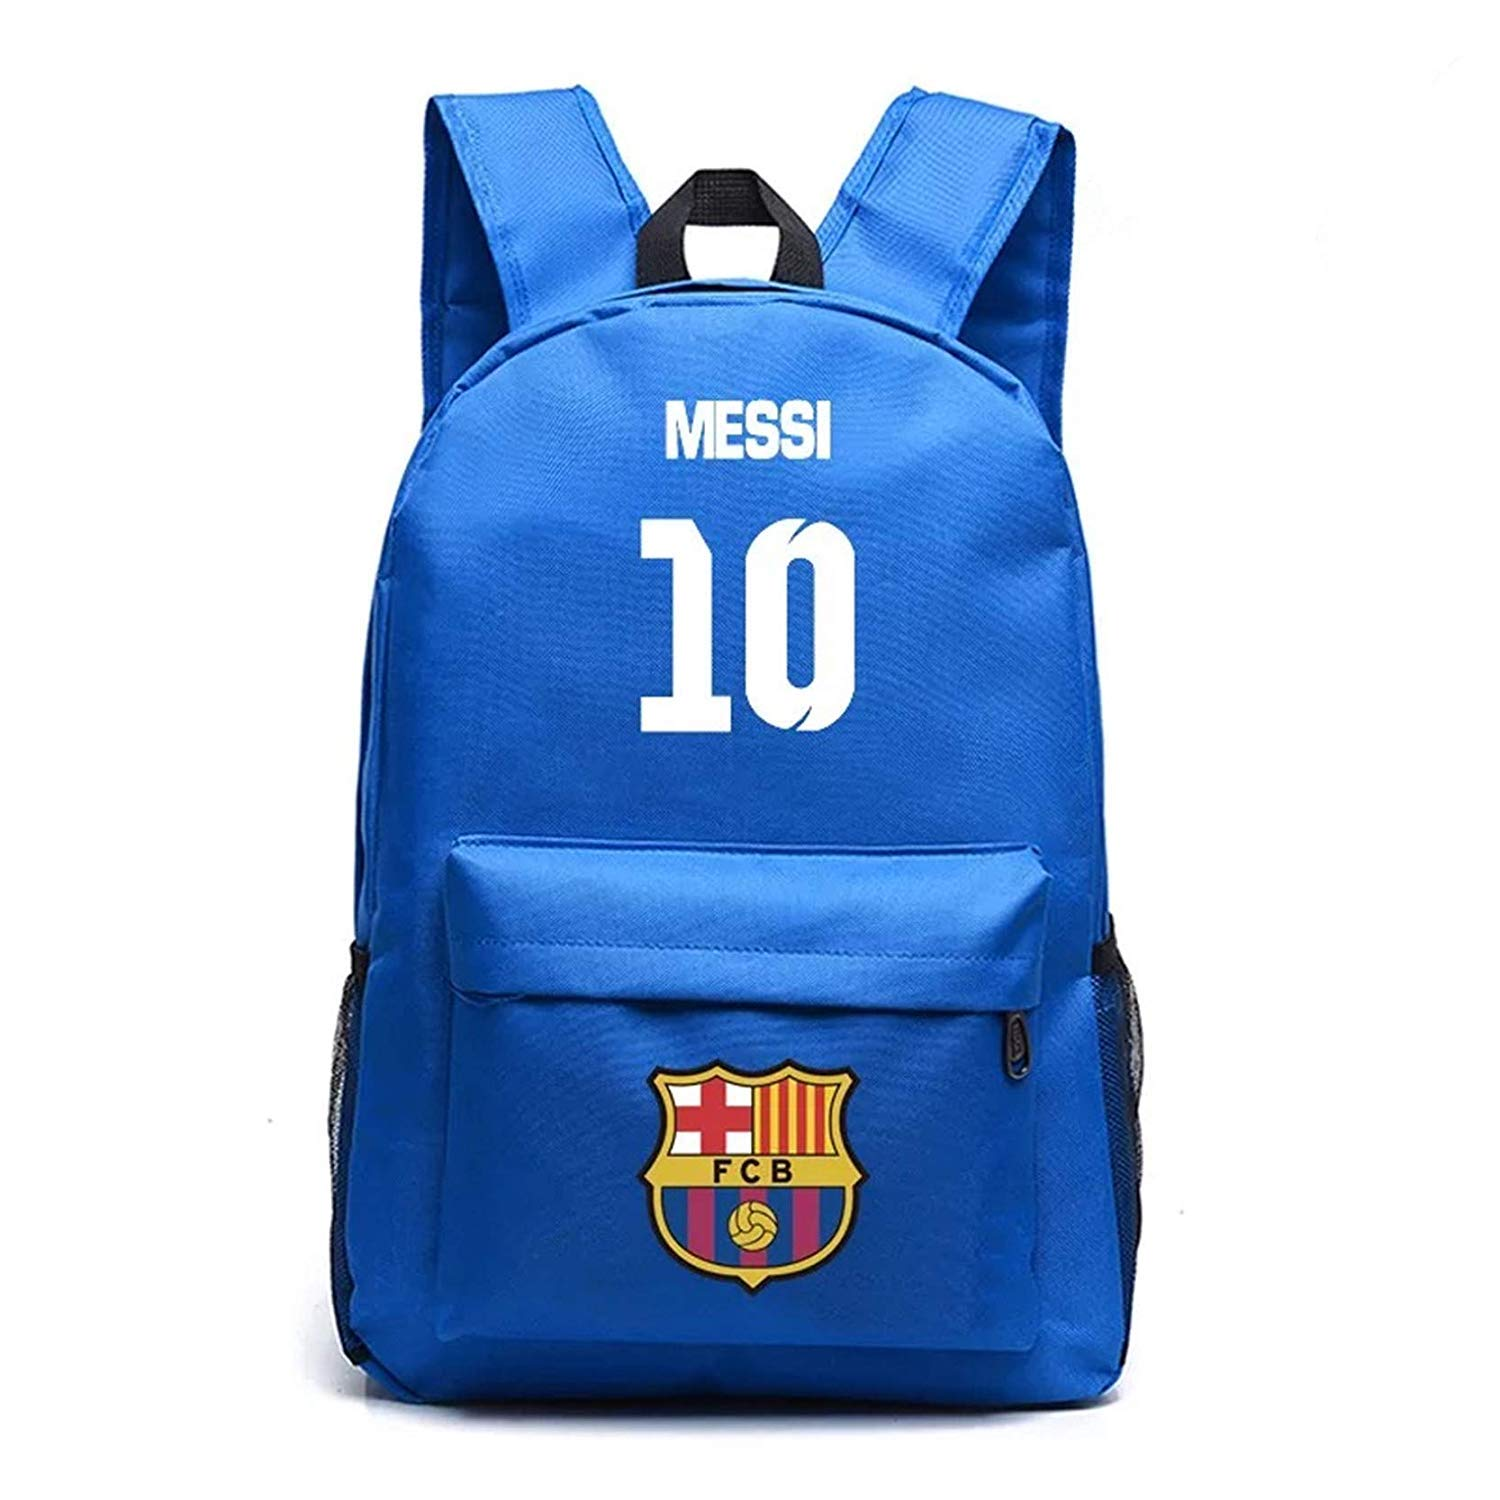 bluee One Size Unisex Messi Luminous Backpack for School Travel Messi Fan